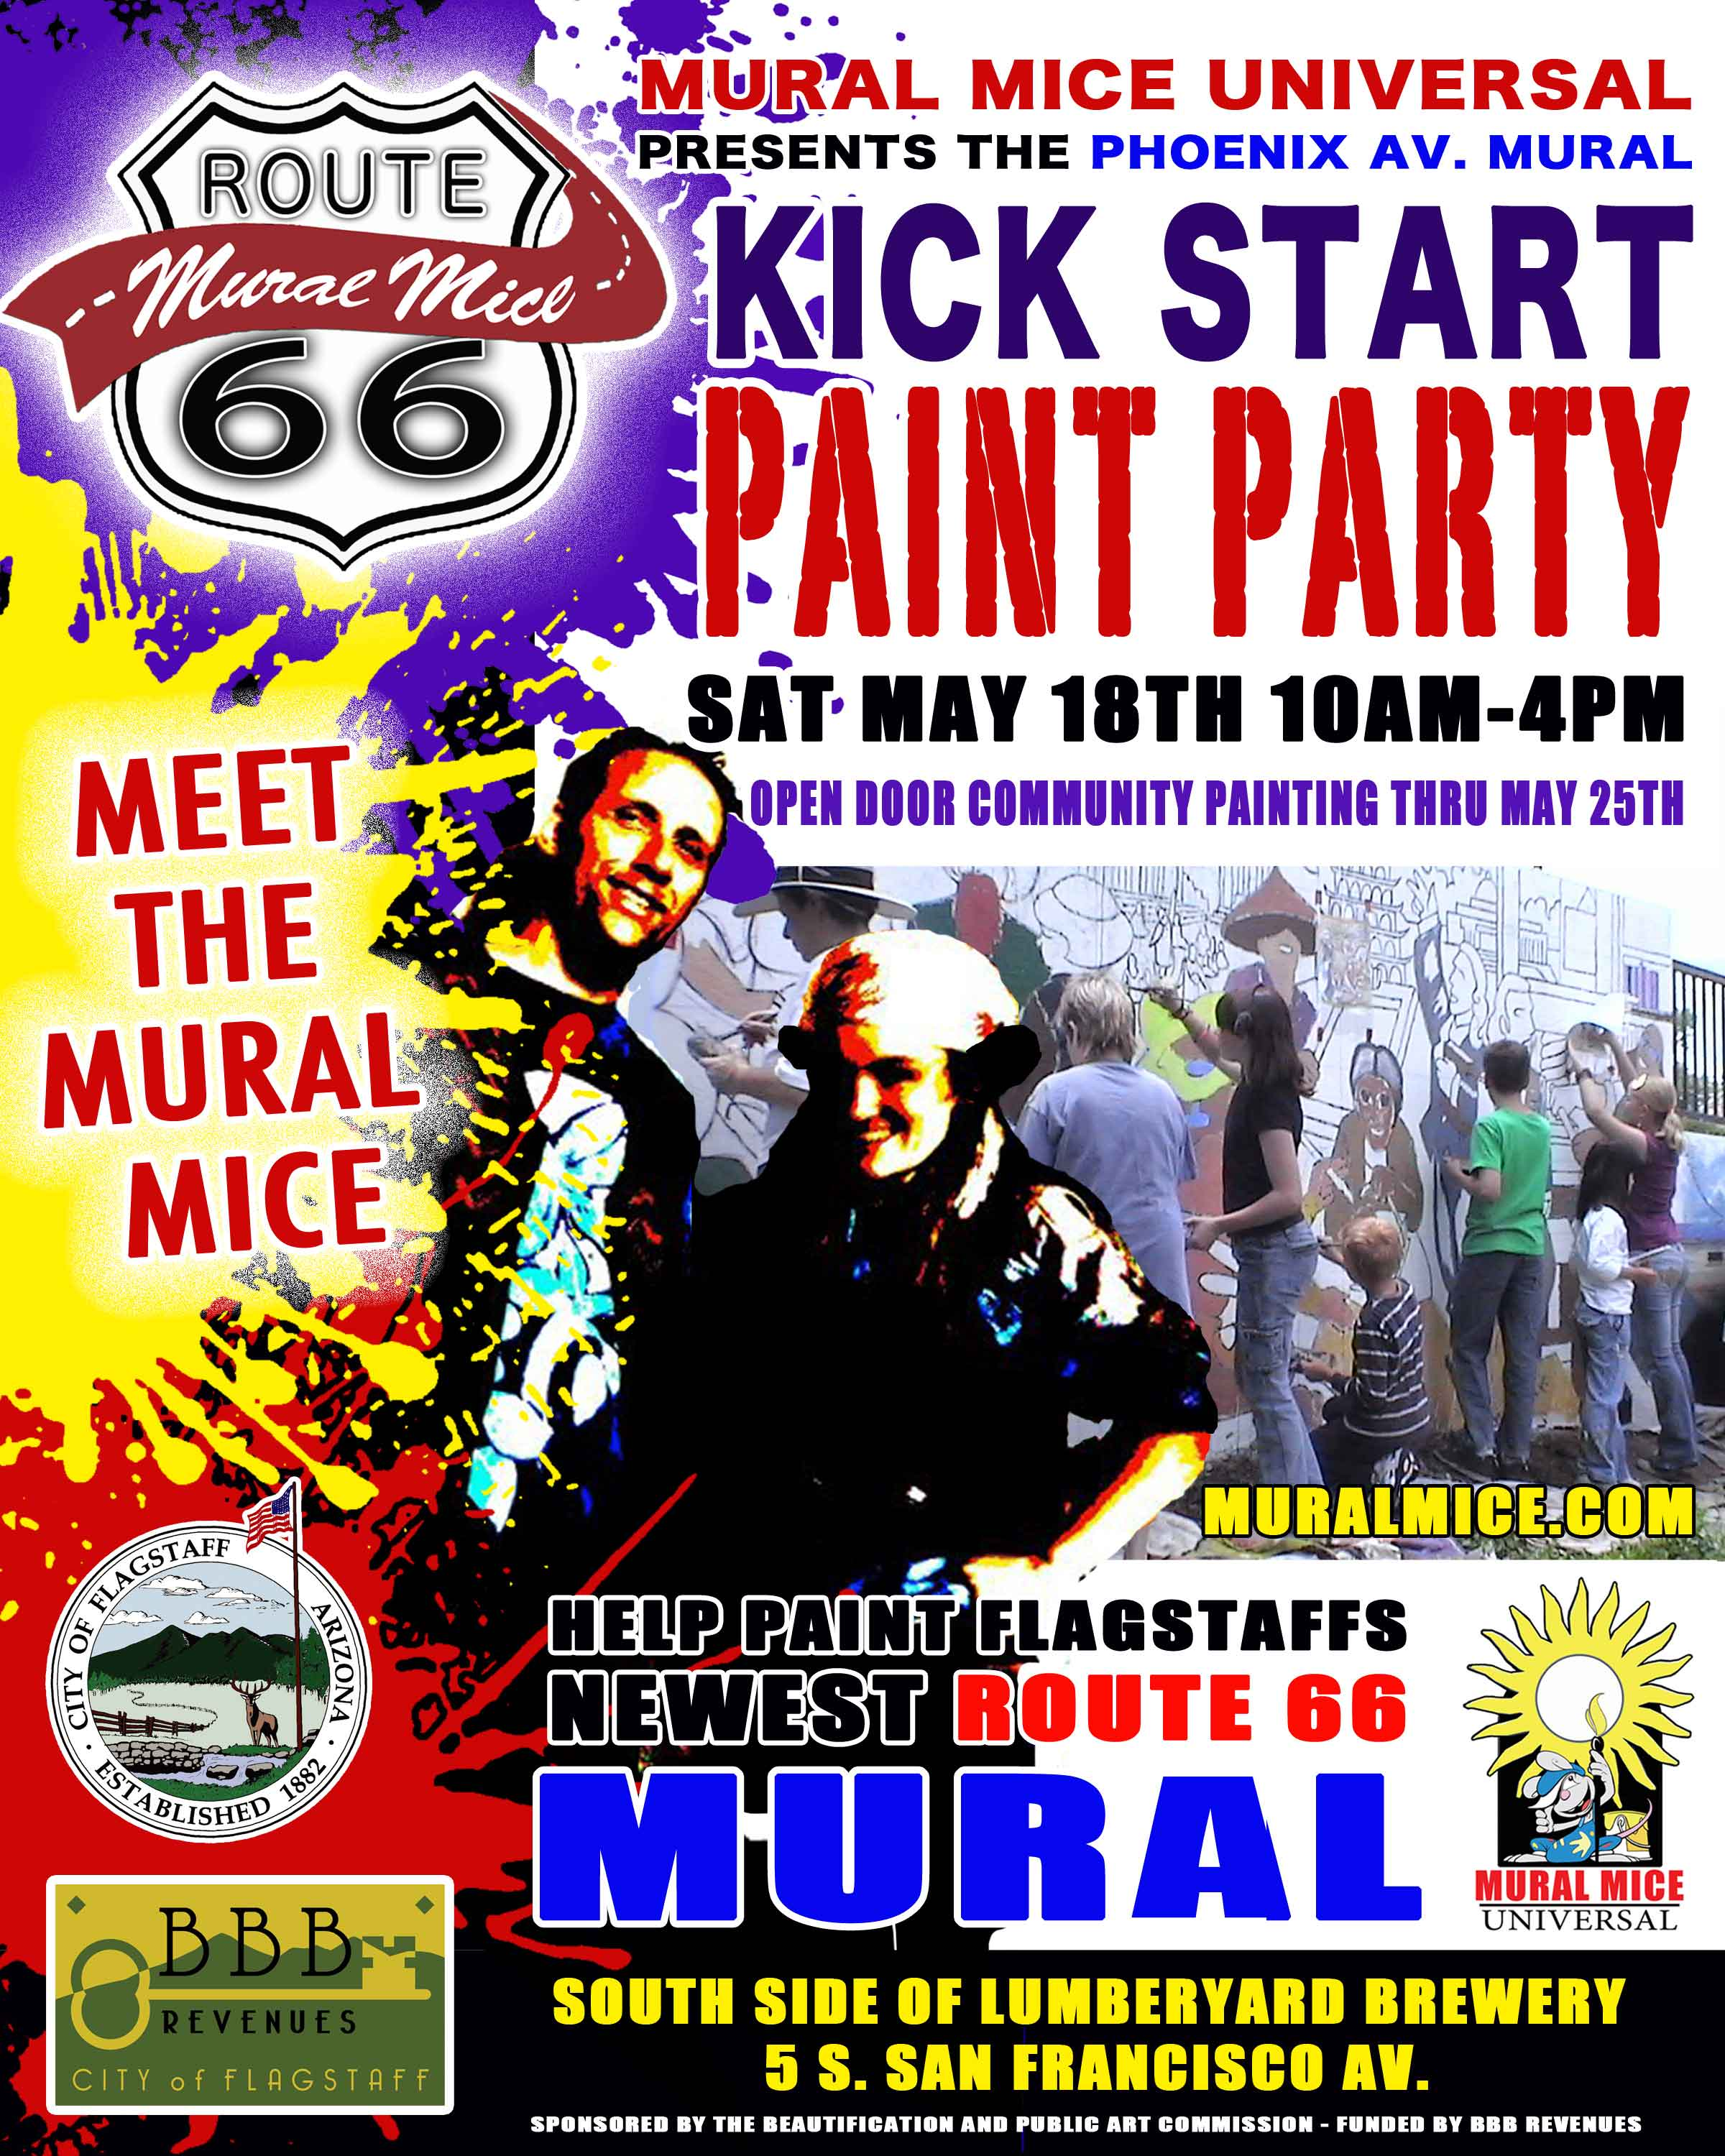 Rt-66-Kick-Start-Party-Flier-lo-res